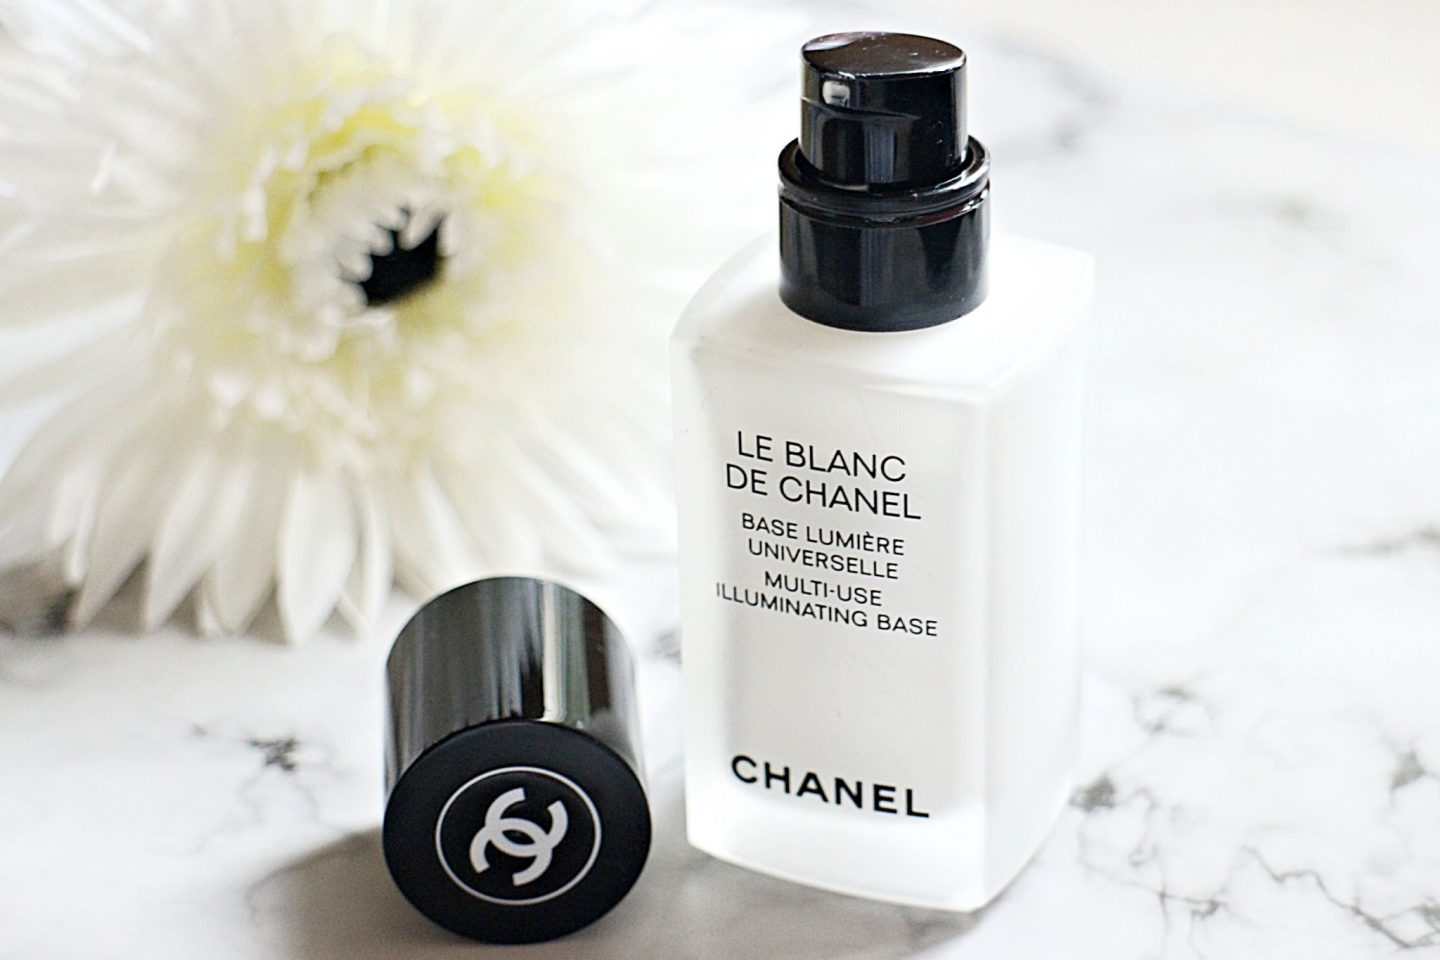 Chanel Illuminating Base